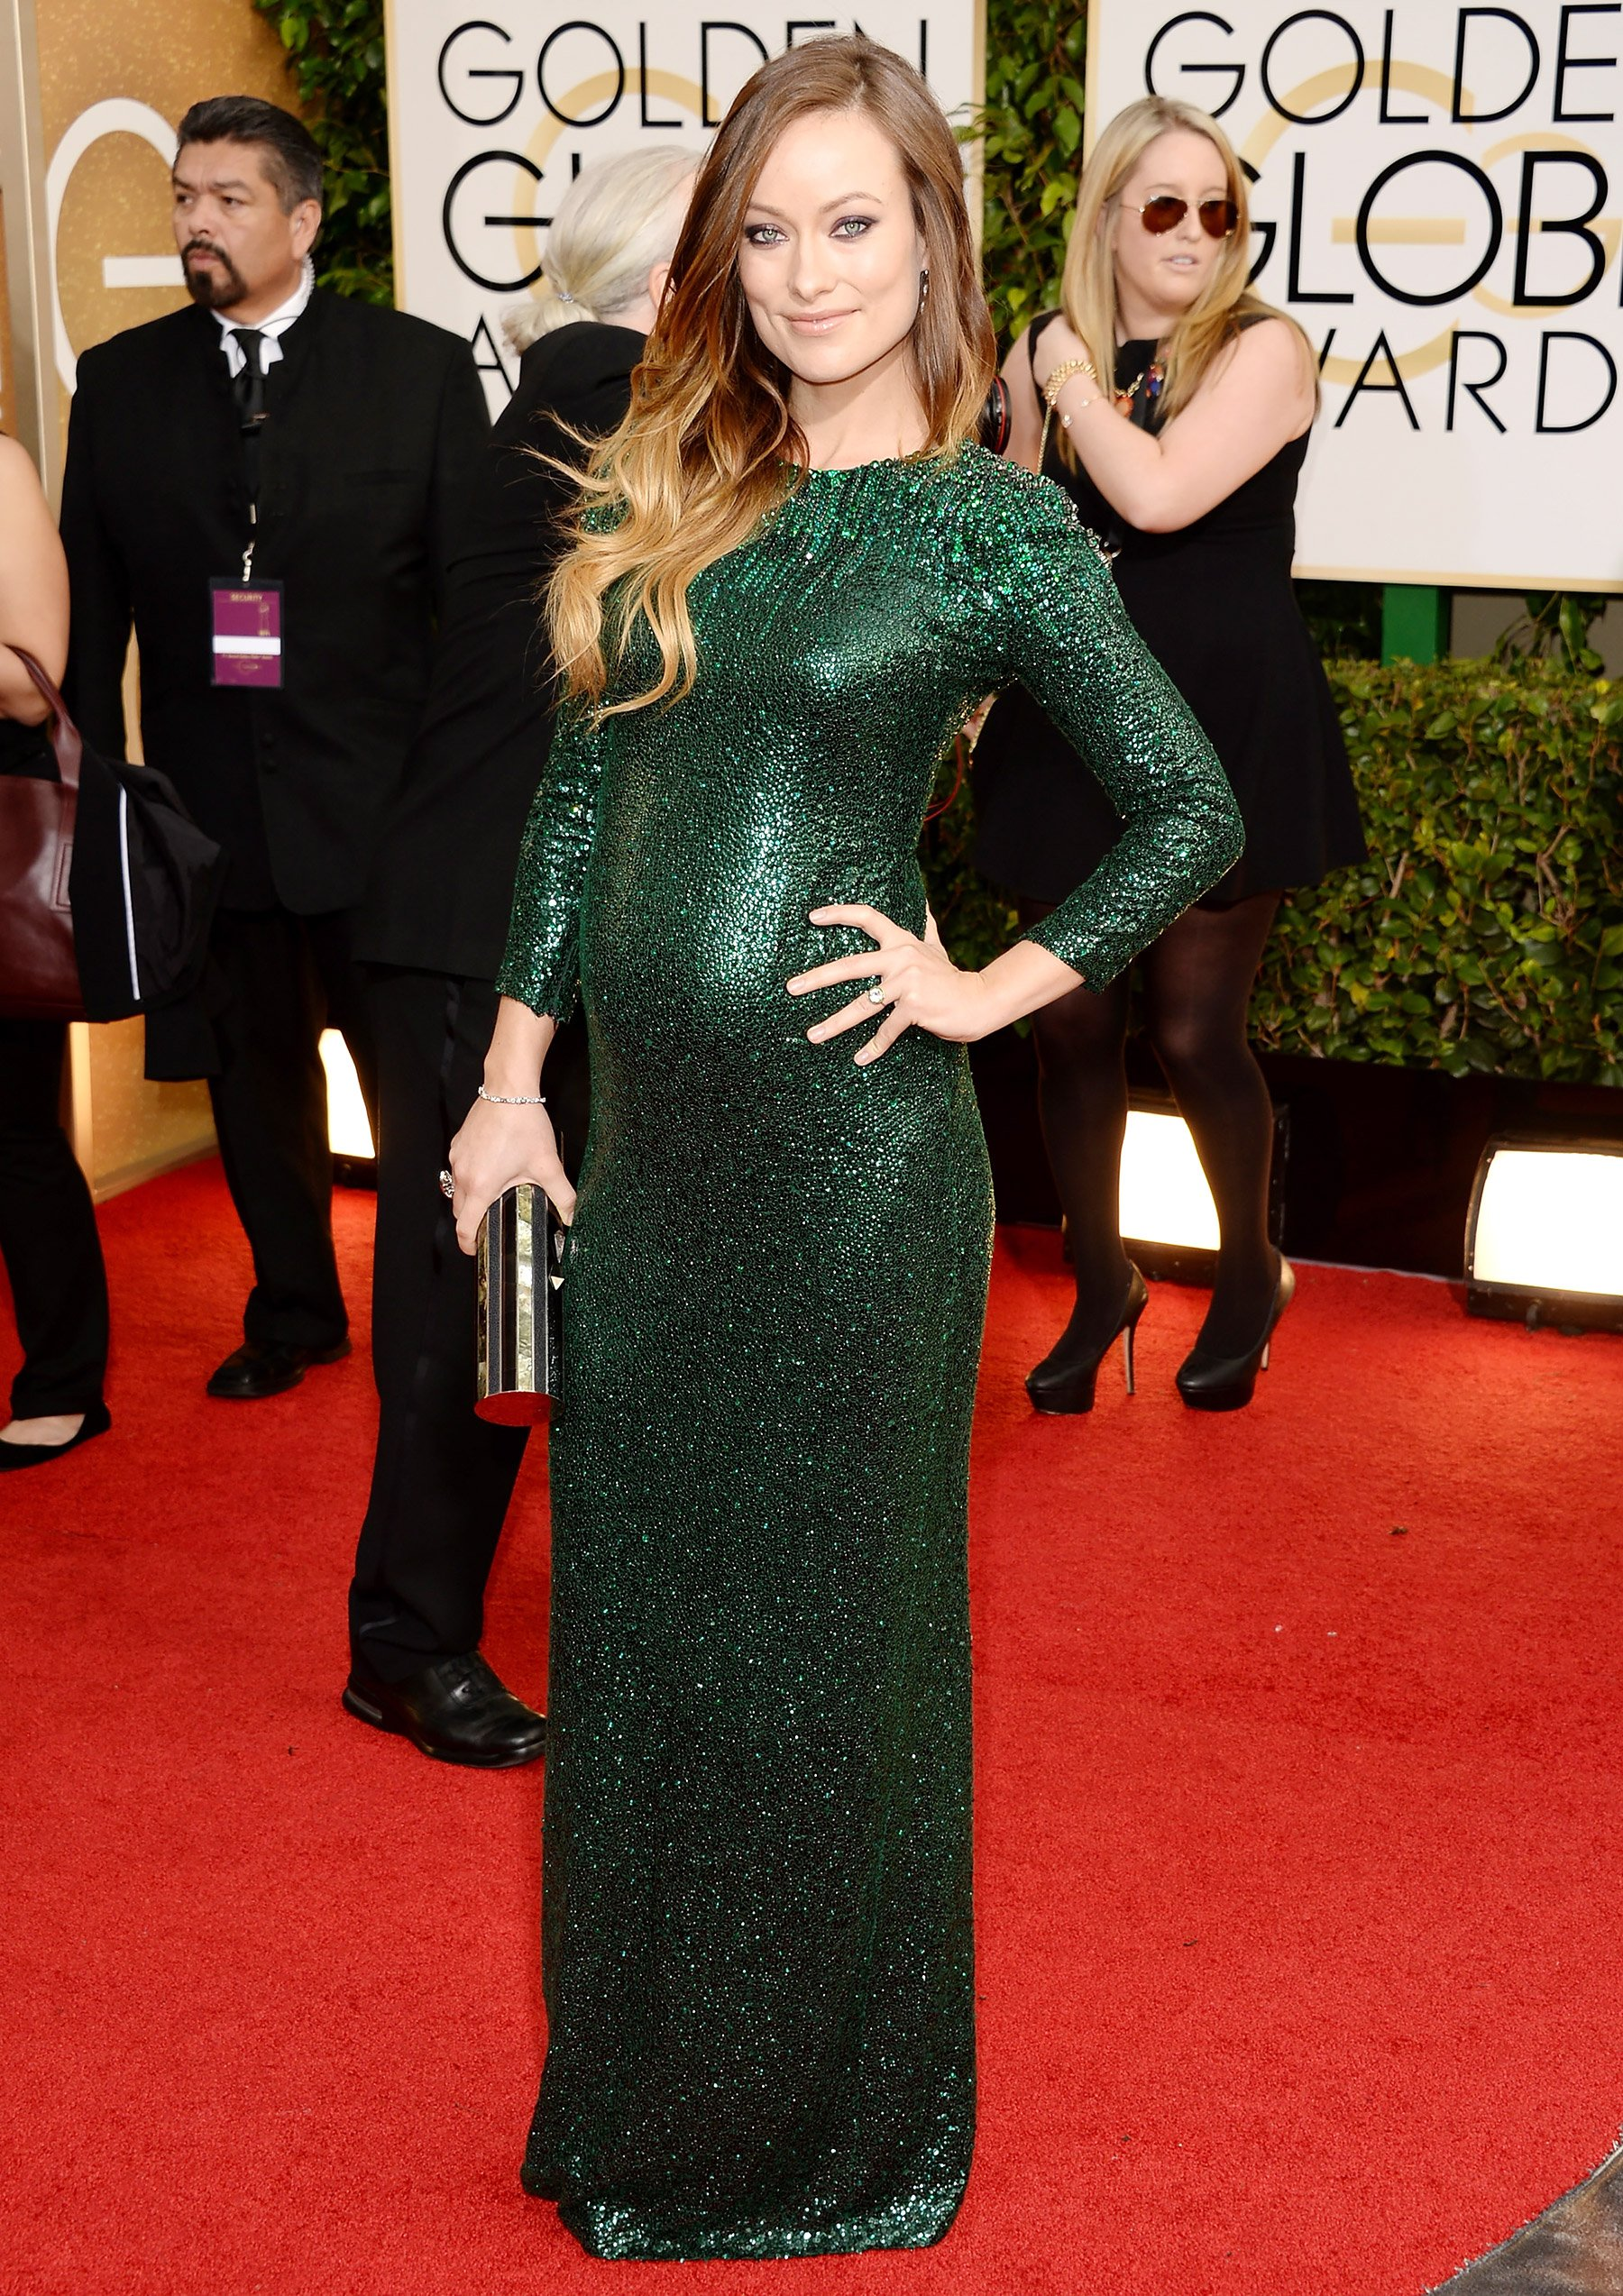 Olivia Wilde at this year's Golden Globe Awards